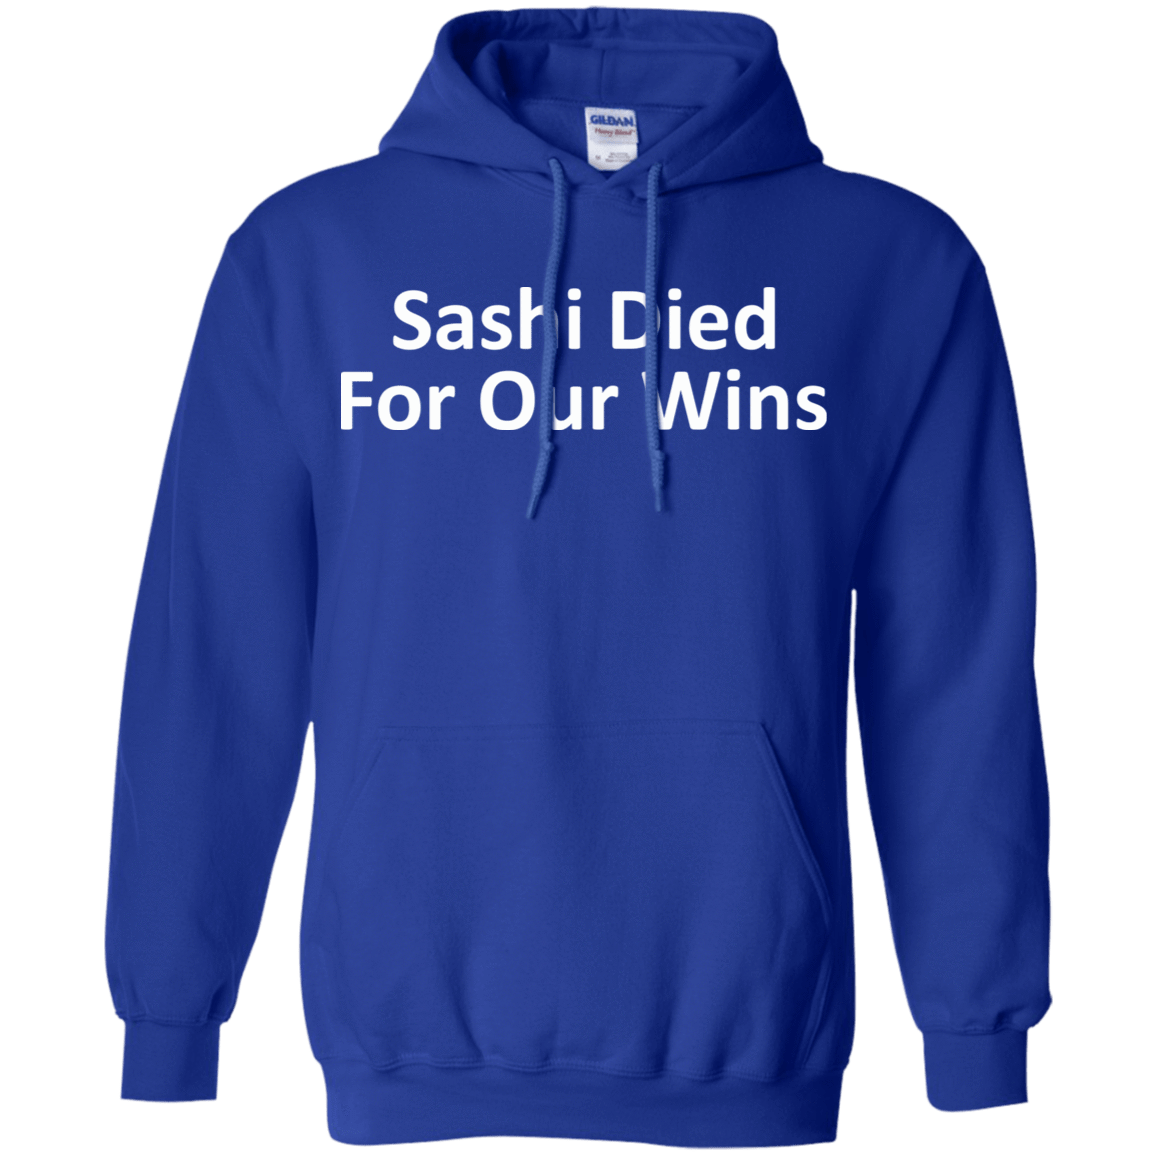 Sashi Died For Our Wins 541-4765-73057084-23175 - Tee Ript